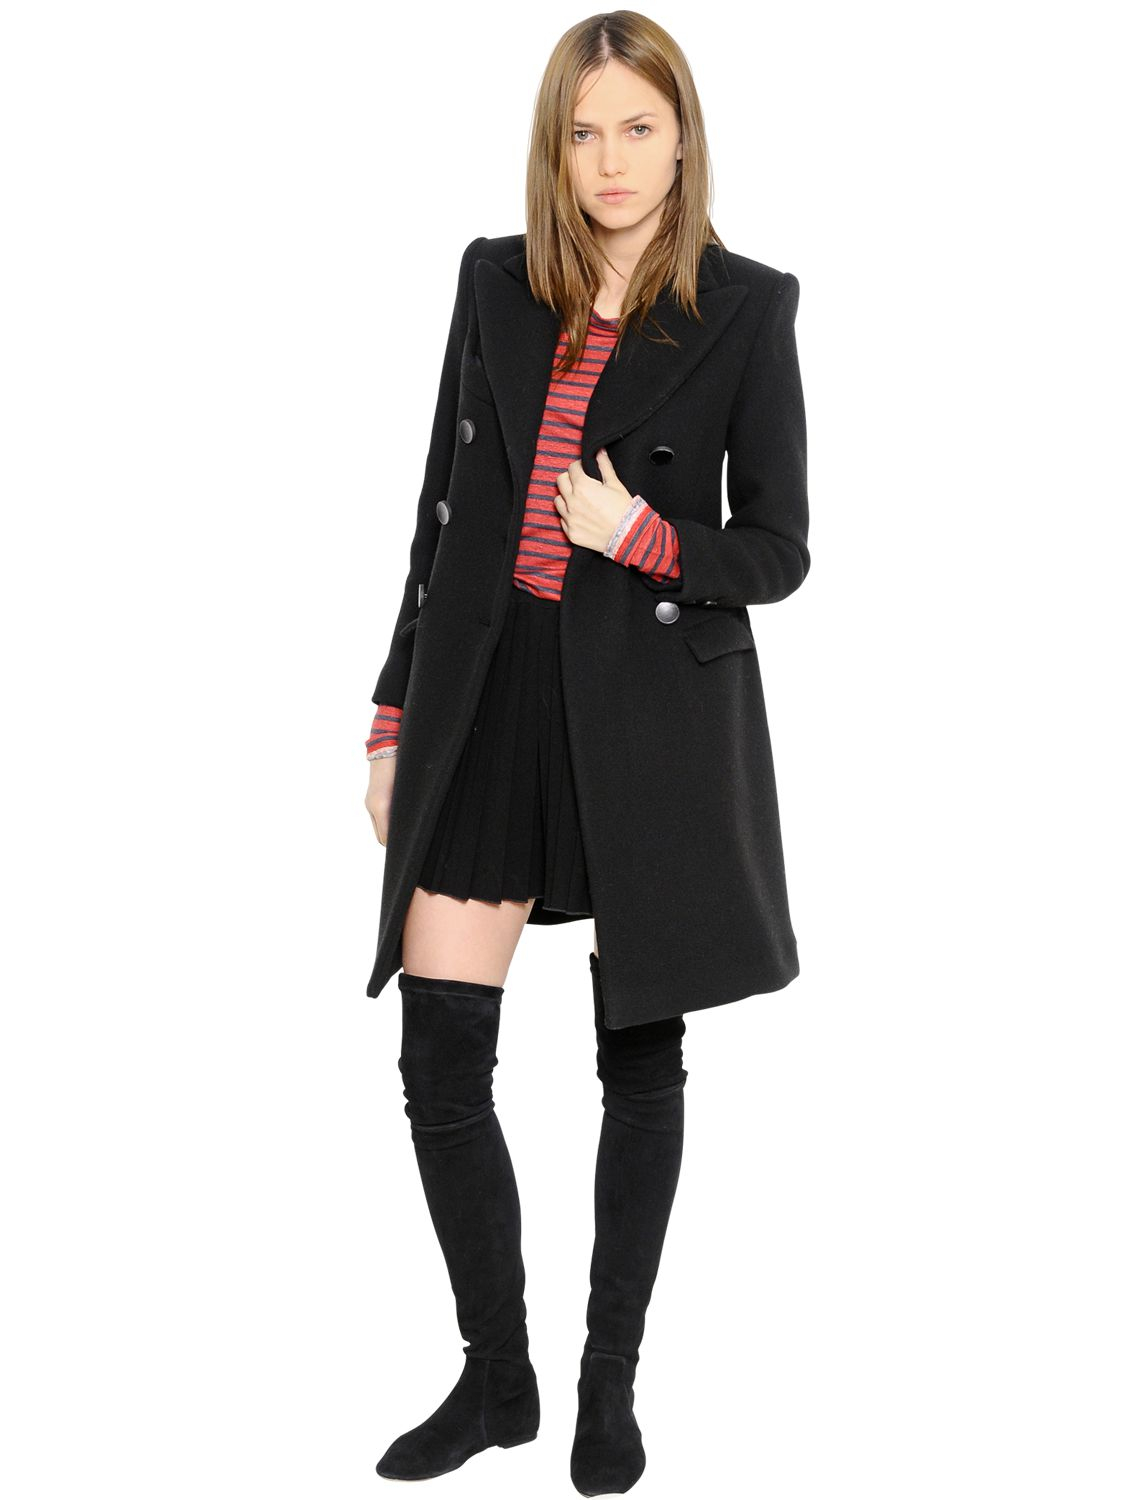 Étoile isabel marant Double Breasted Wool Coat in Black | Lyst